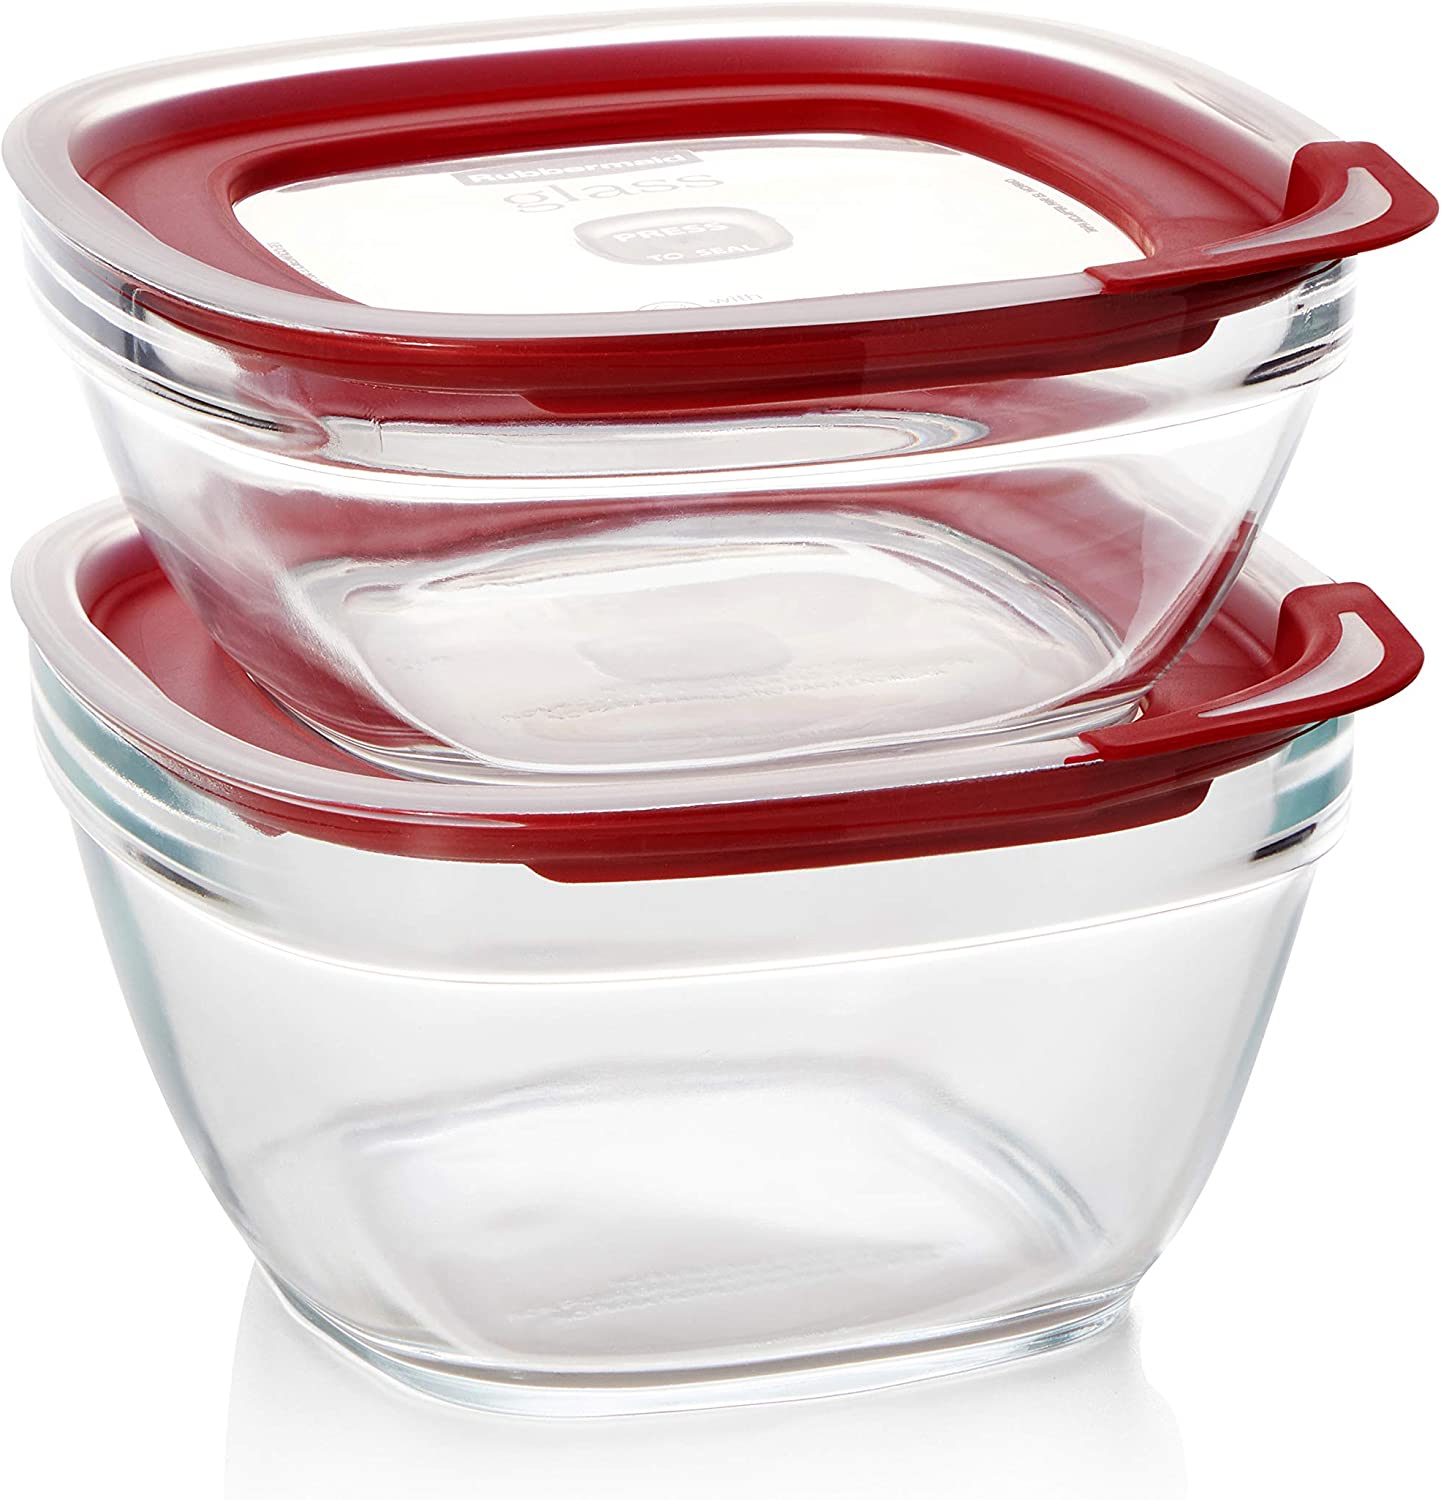 Rubbermaid Easy Find Lids Glass Food Storage Container, 4-pieces, Clear